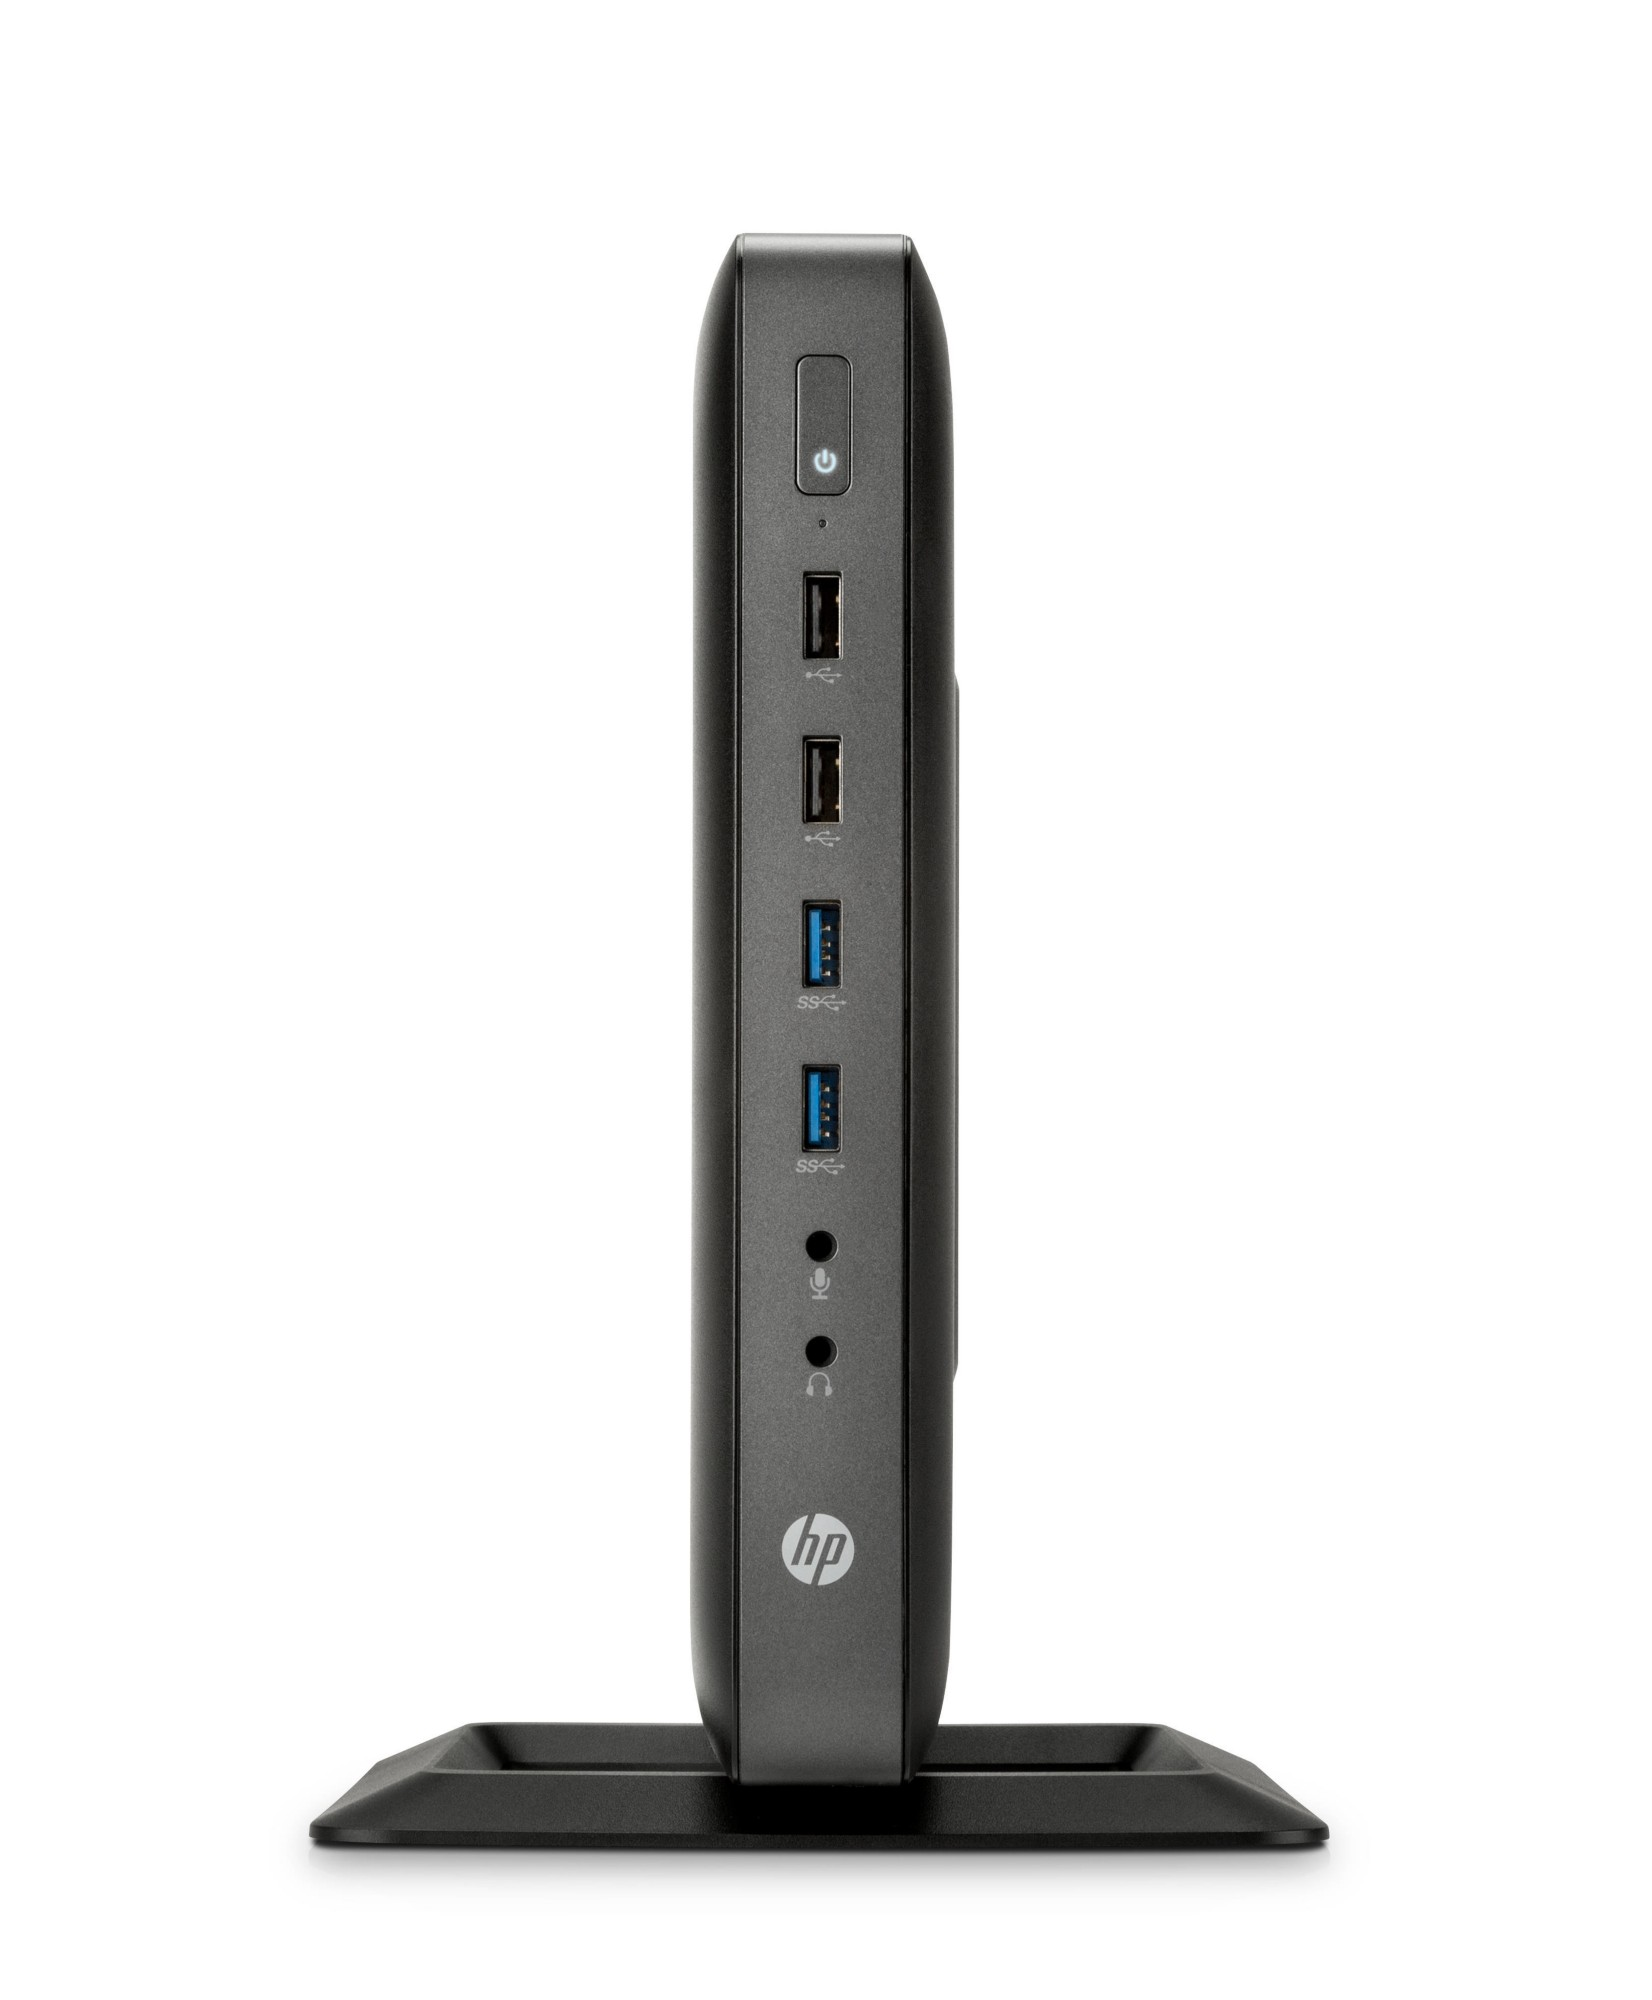 HP F5A53AA THIN CLIENTS